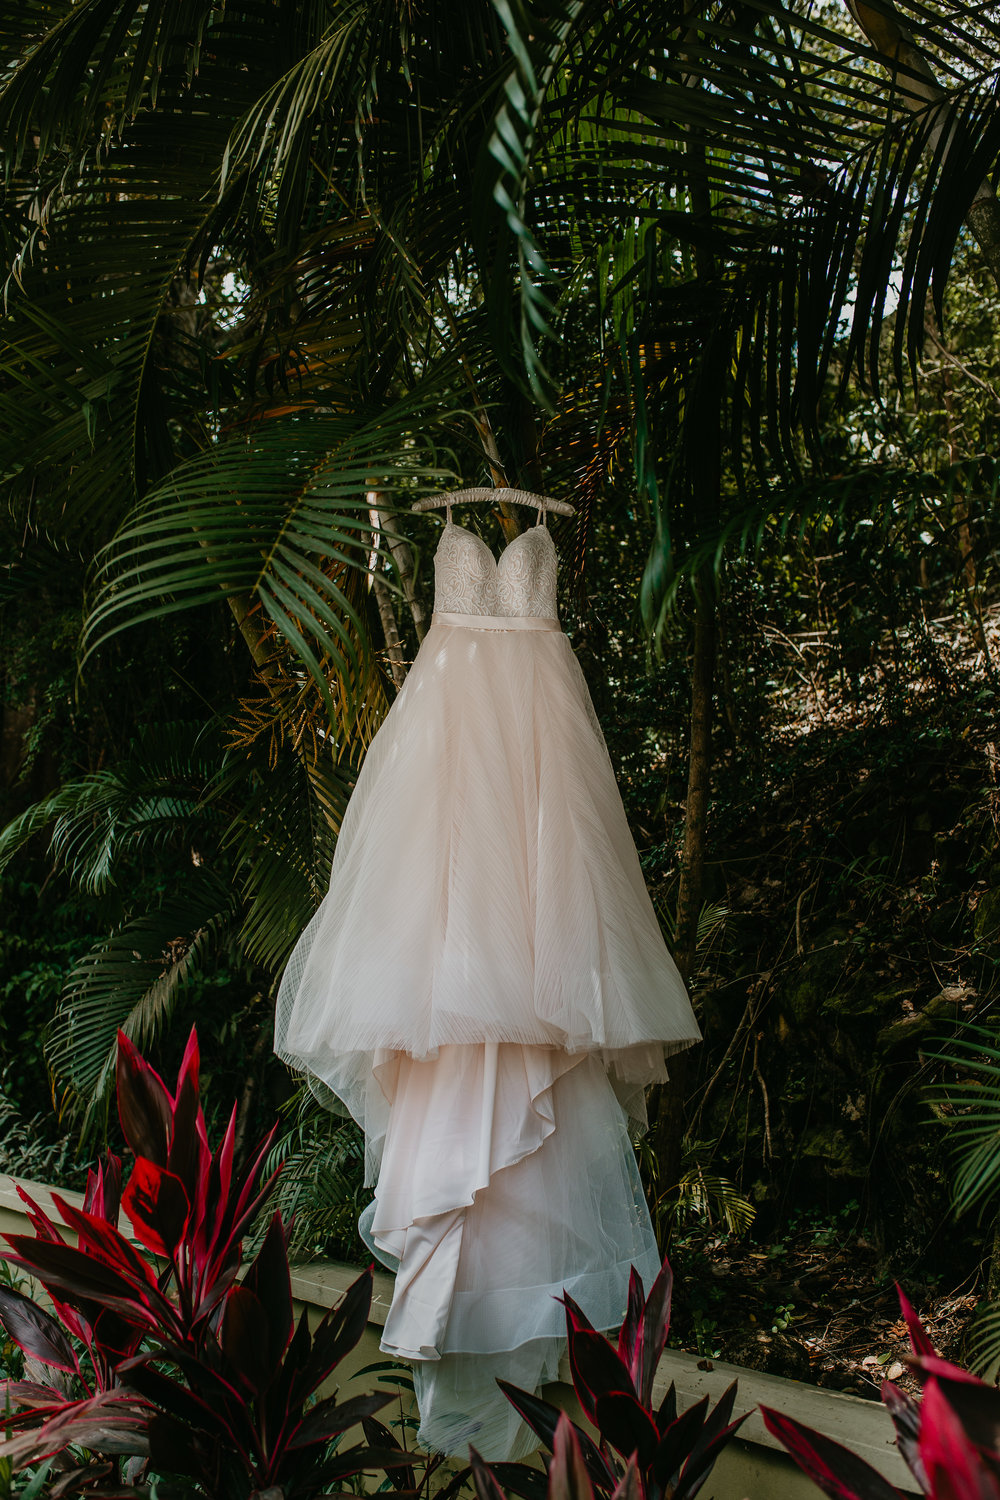 nicole-daacke-photography-destination-wedding-in-st-lucia-sandals-la-toc-intimate-island-wedding-carribean-elopement-photographer-chill-island-wedding-4.jpg